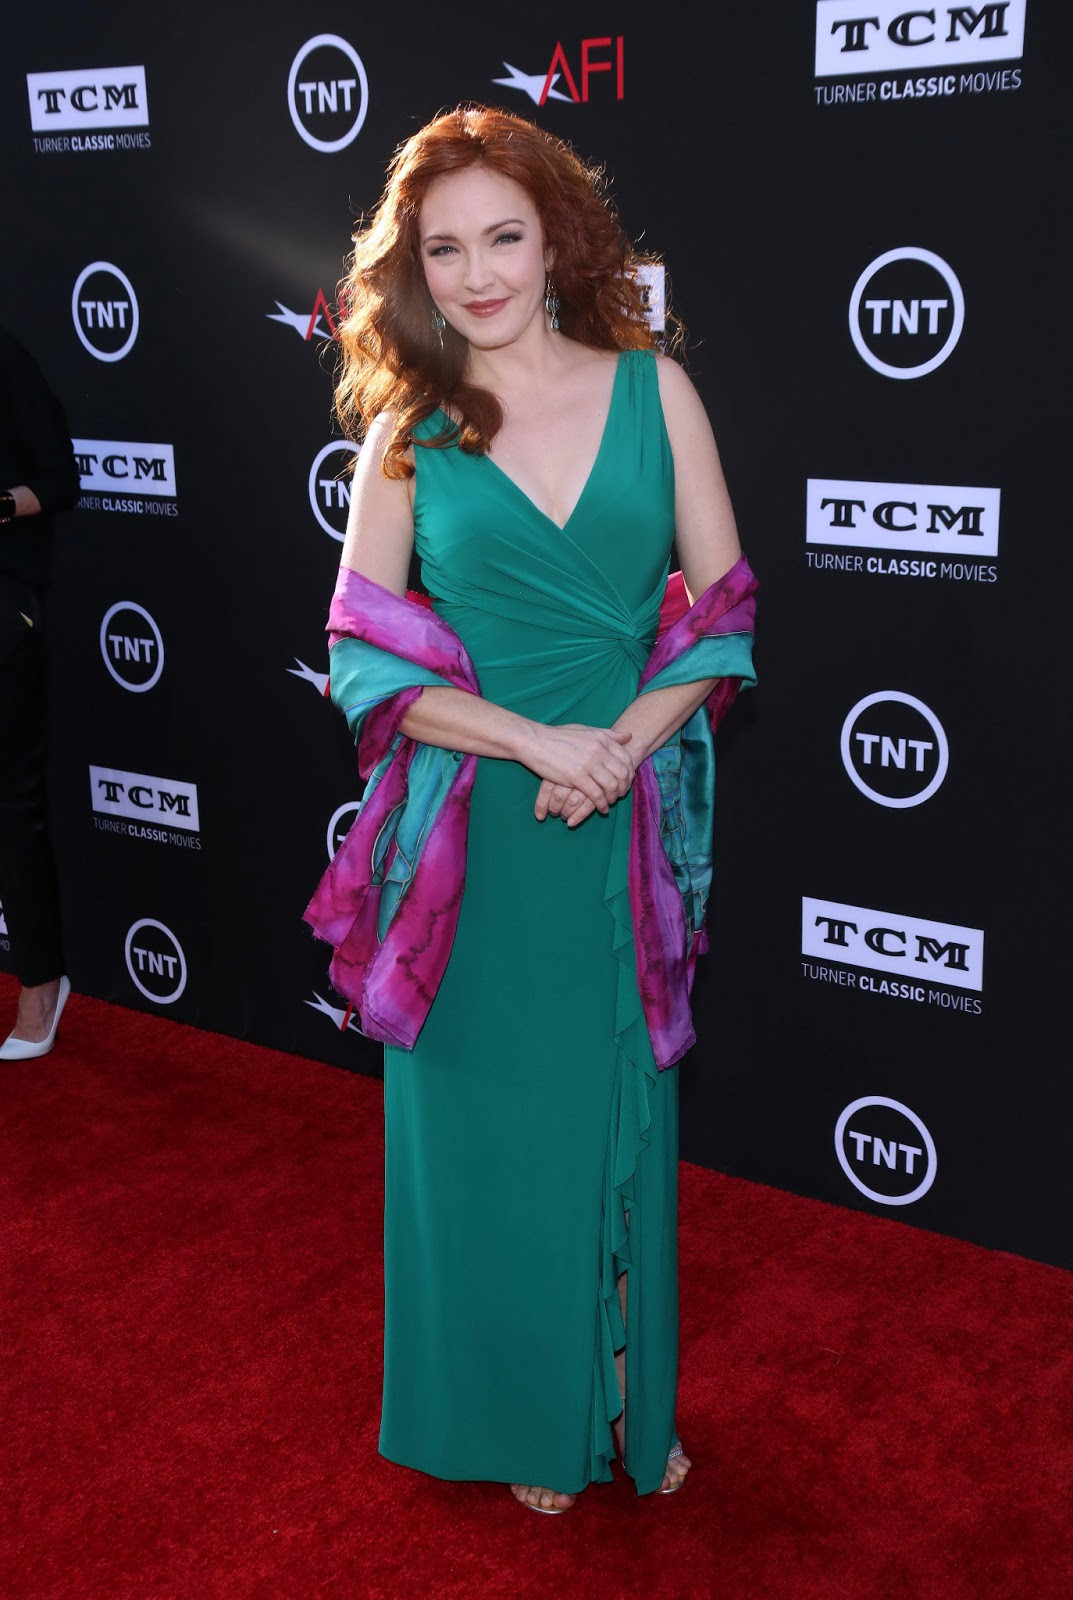 Swimsuit Amy Yasbeck nudes (81 pics) Hacked, Instagram, bra